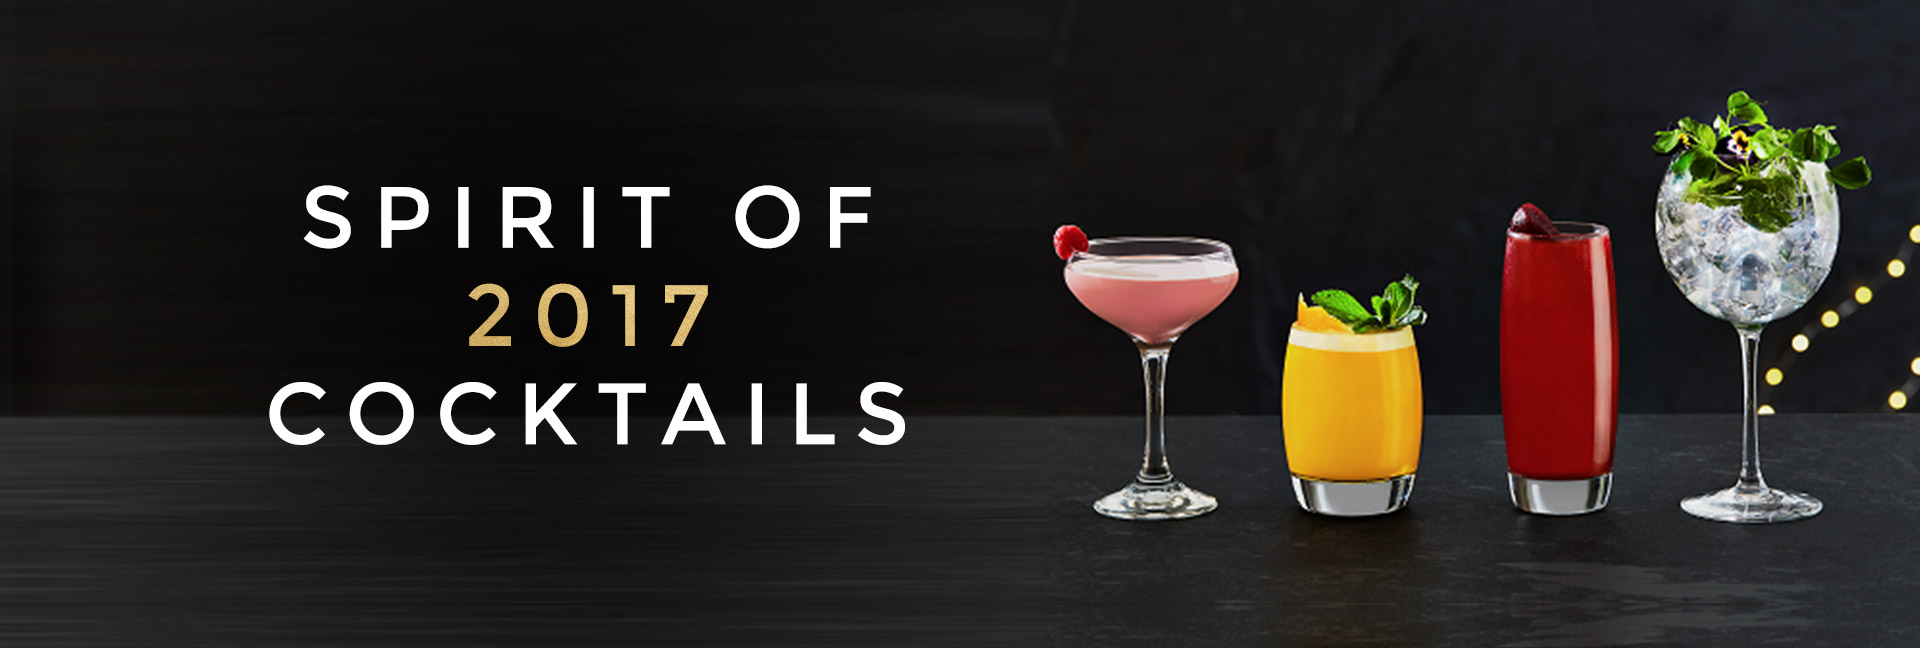 Spirit of 2017 cocktails at All Bar One GeorgeSt Edinburgh